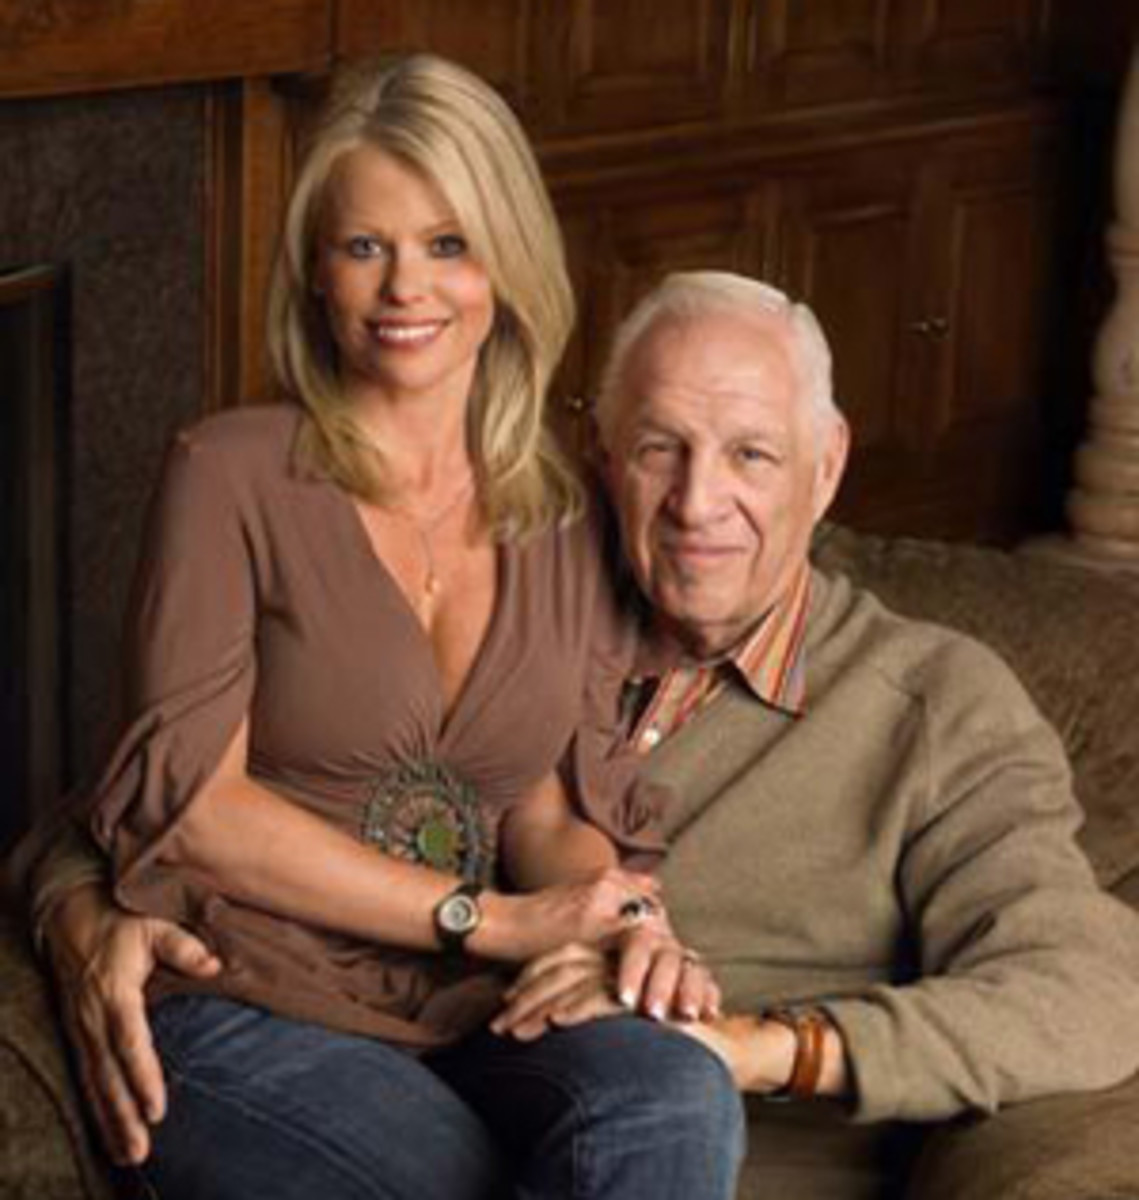 The Cougar & The Sugar Daddy: Are Women More Offended By May/December Romance?